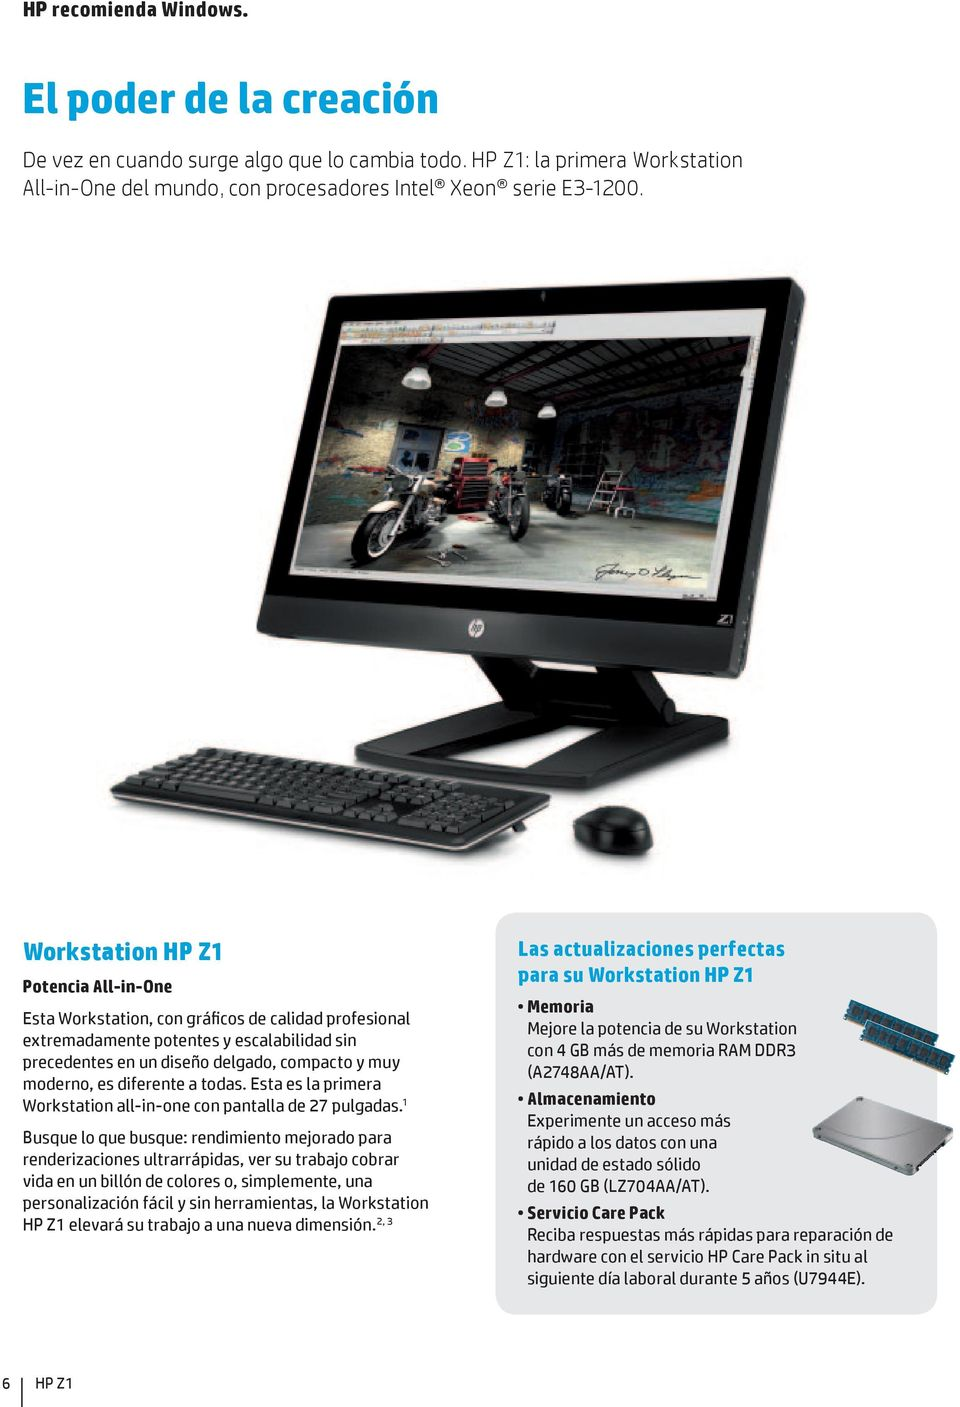 diferente a todas. Esta es la primera Workstation all-in-one con pantalla de 27 pulgadas.